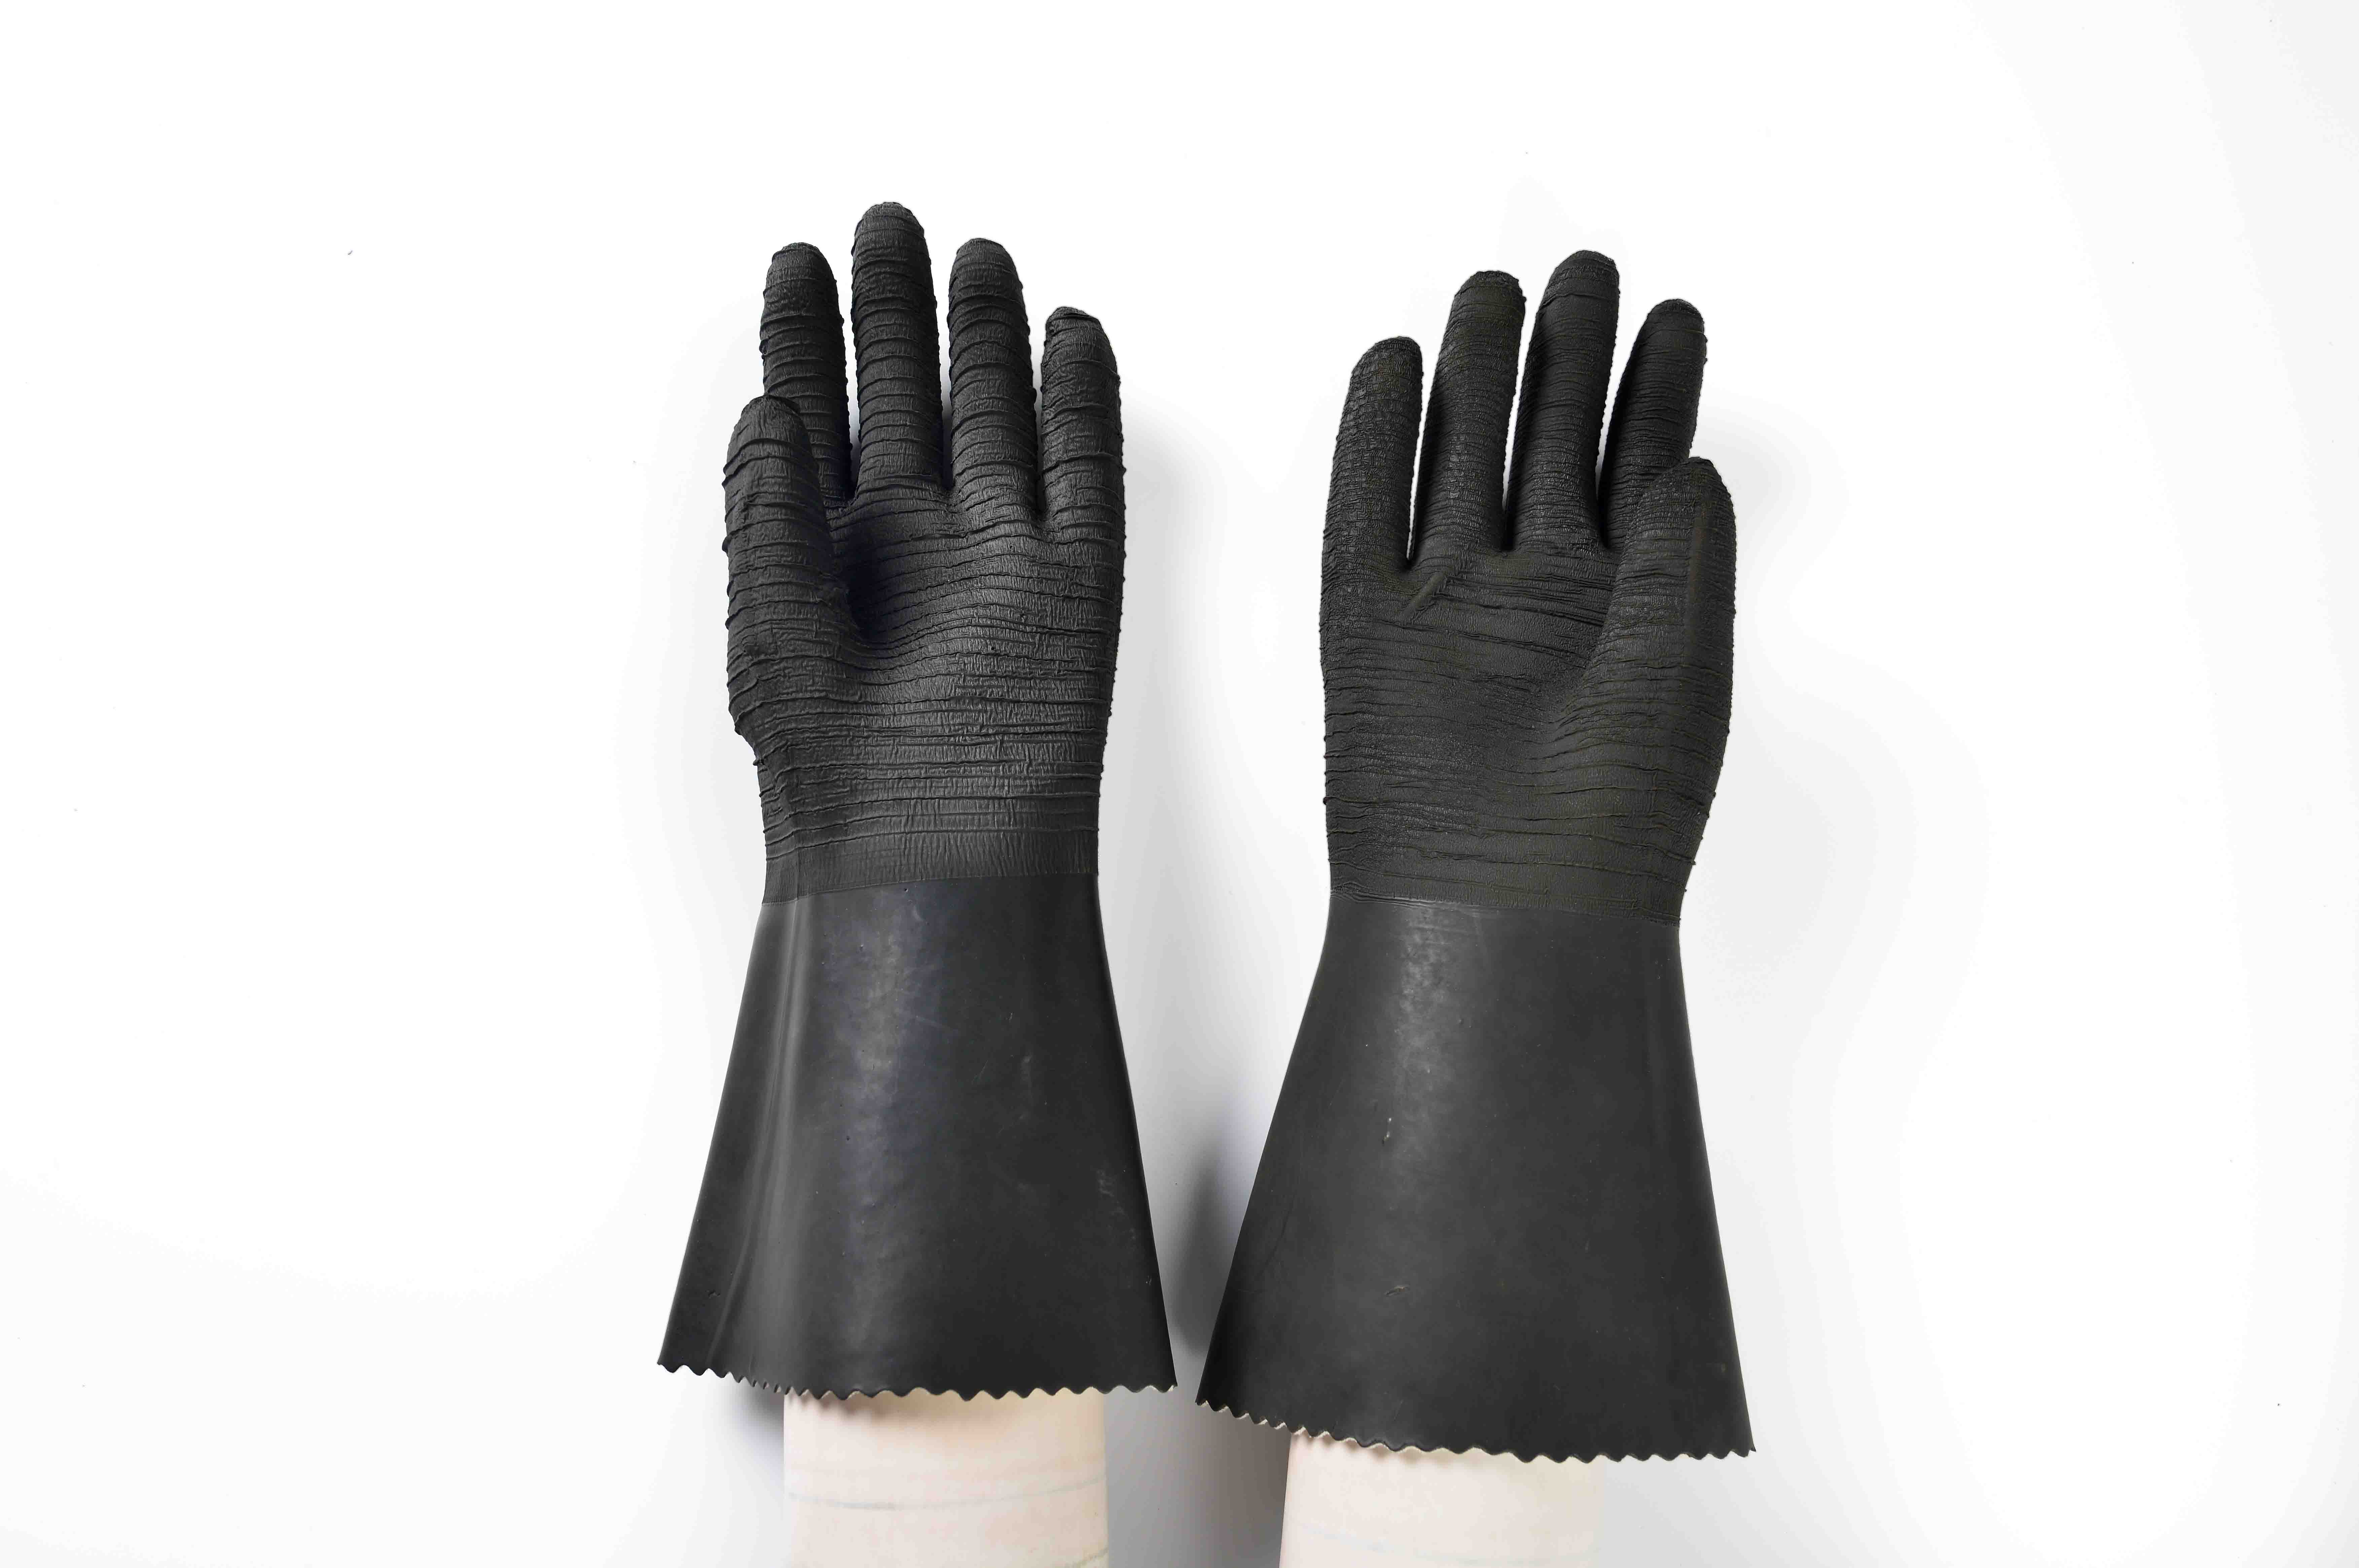 OEM/ODM Supplier for 14″ rubber glove with cotton linning-rough finish Australia Factory